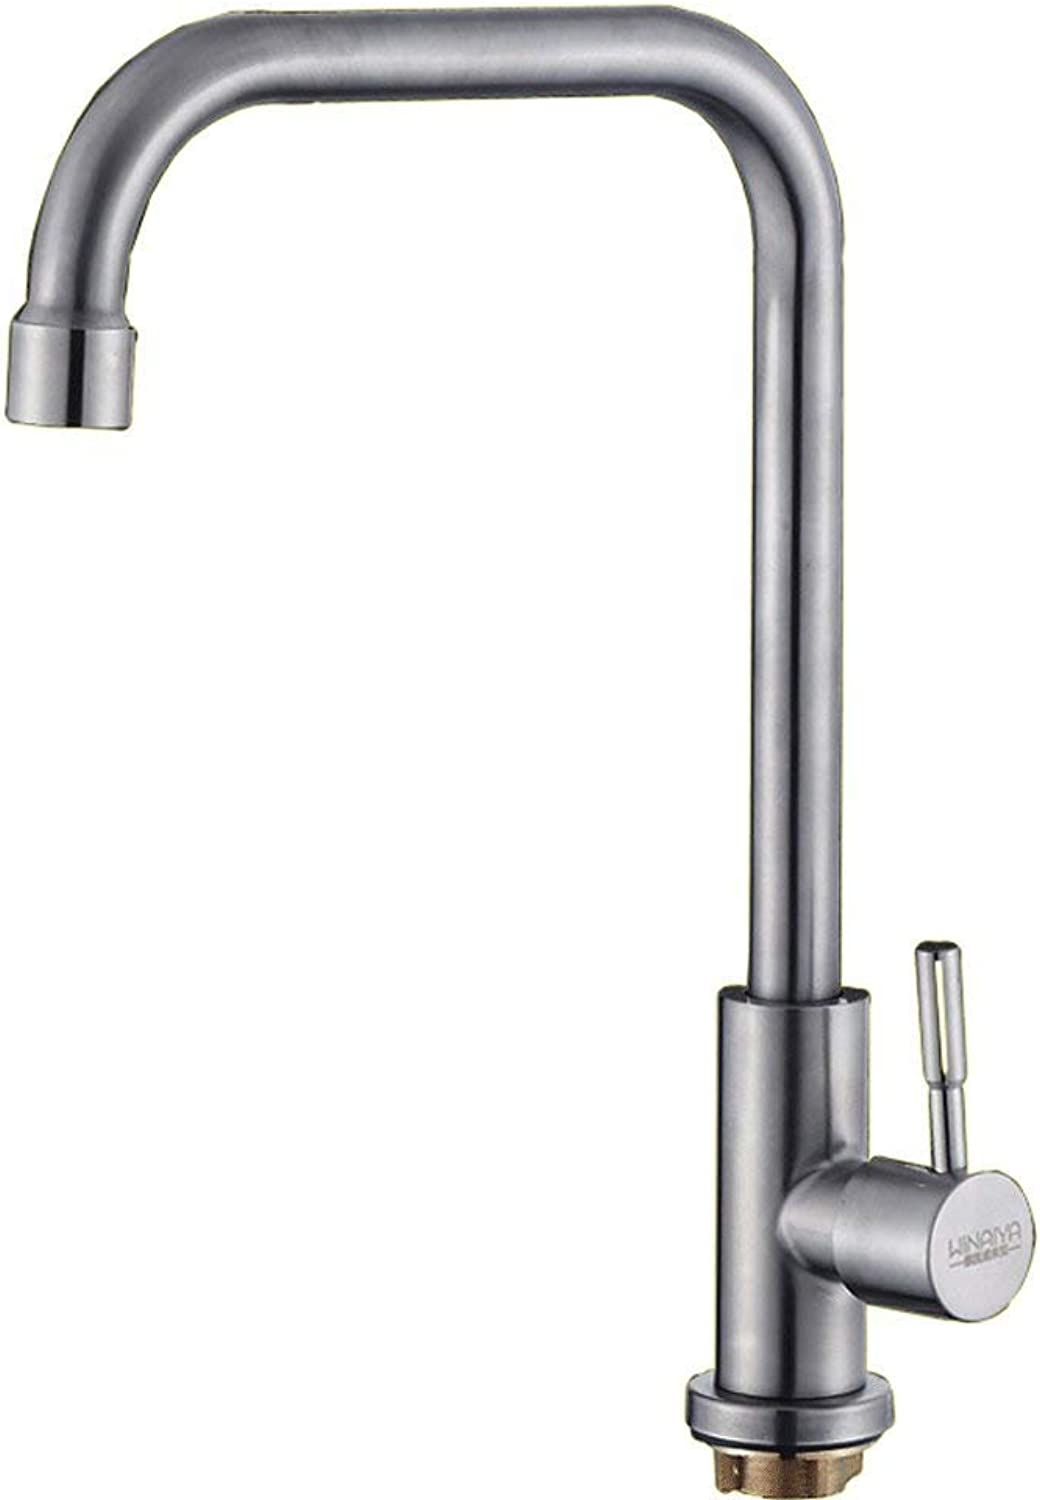 DYR Faucet Kitchen Faucet Single Cold Water Tap Spout and Drain 304 Stainless Steel Tap redary Tap